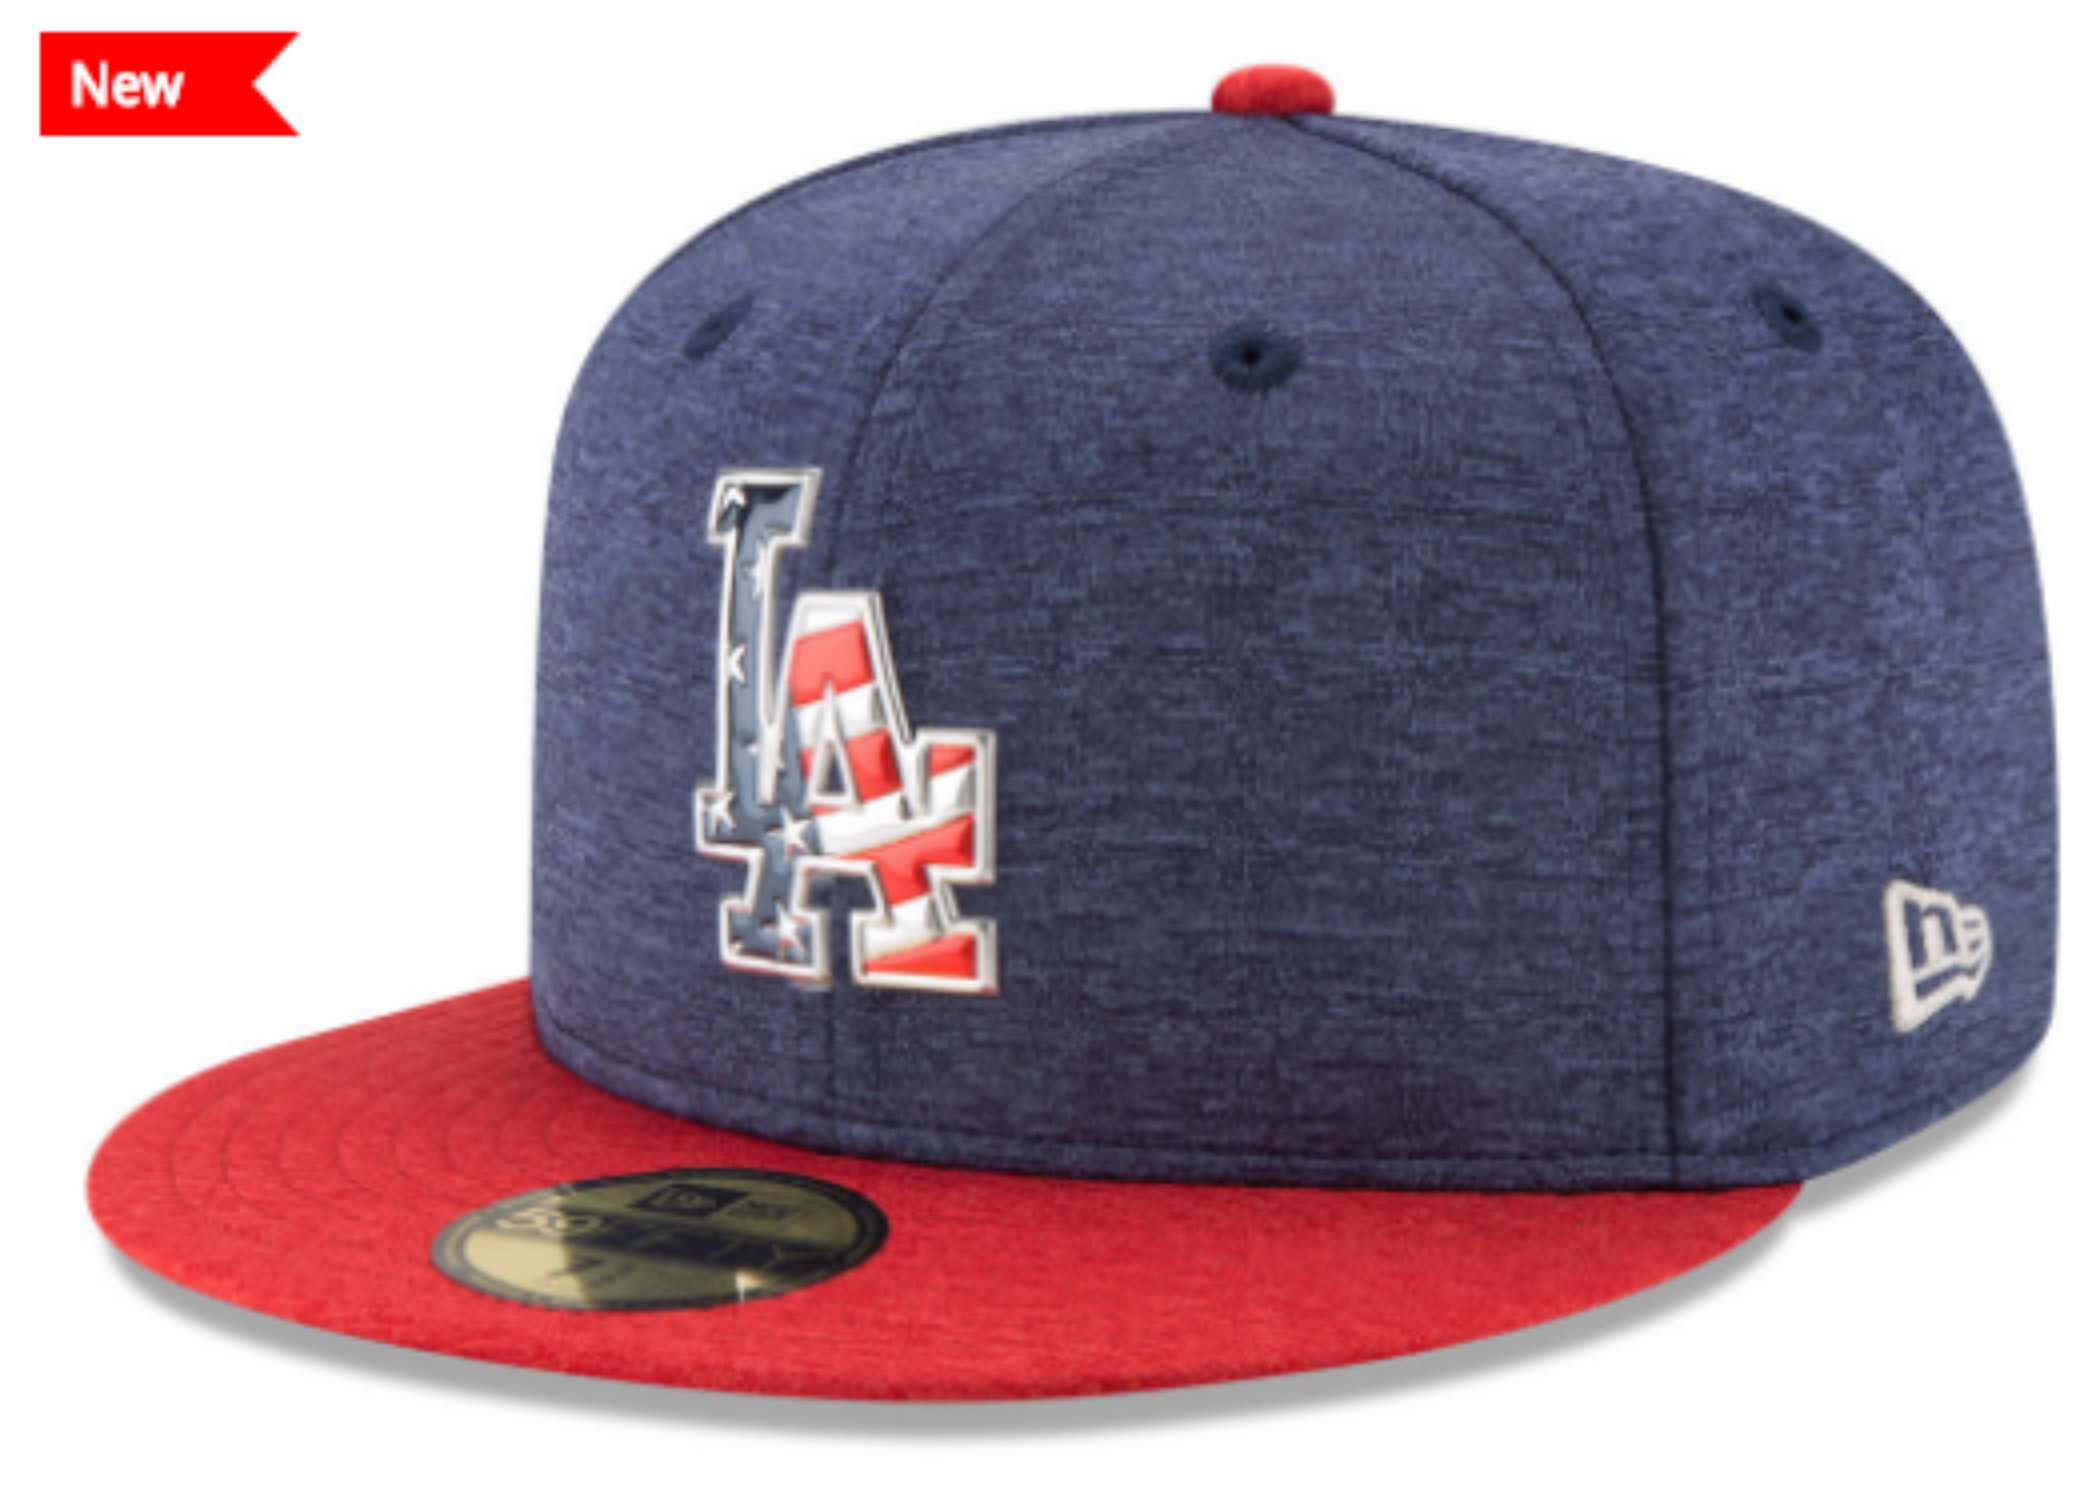 Definitive guide to all MLB 4th of July Hats 2c37f0d330a